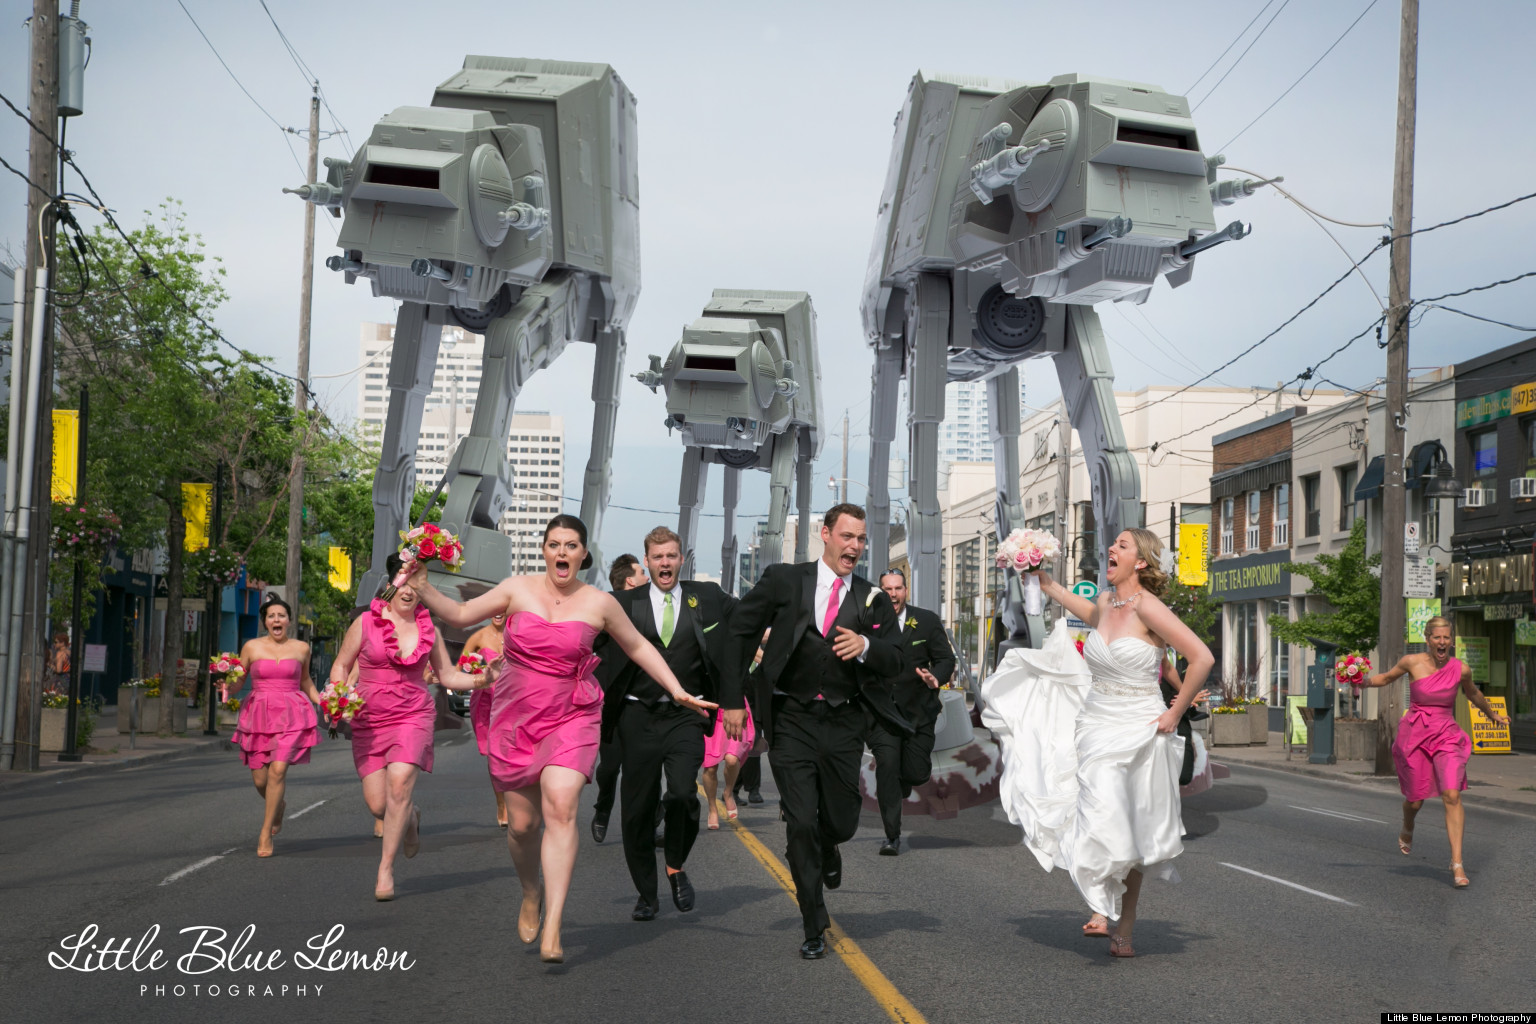 Star Wars Wedding Photo Shows Bridal Party Getting Chased By ATAT Walkers  HuffPost